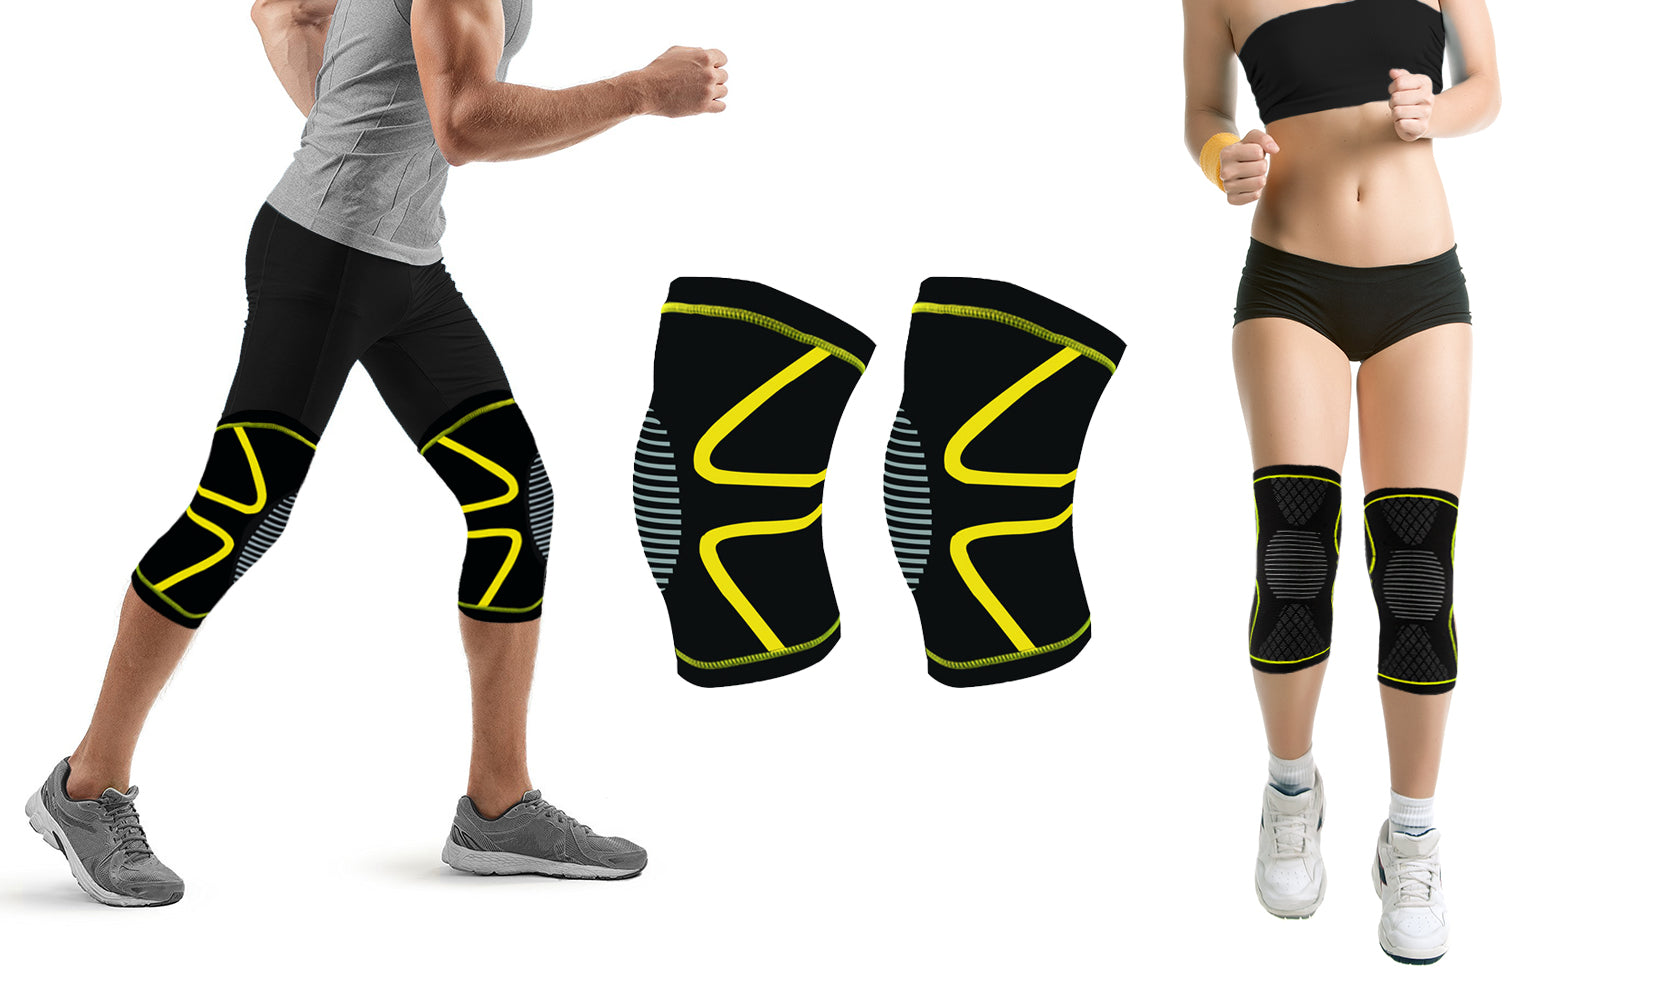 Unisex Knee Compression Support Sleeve with Gel - Pair